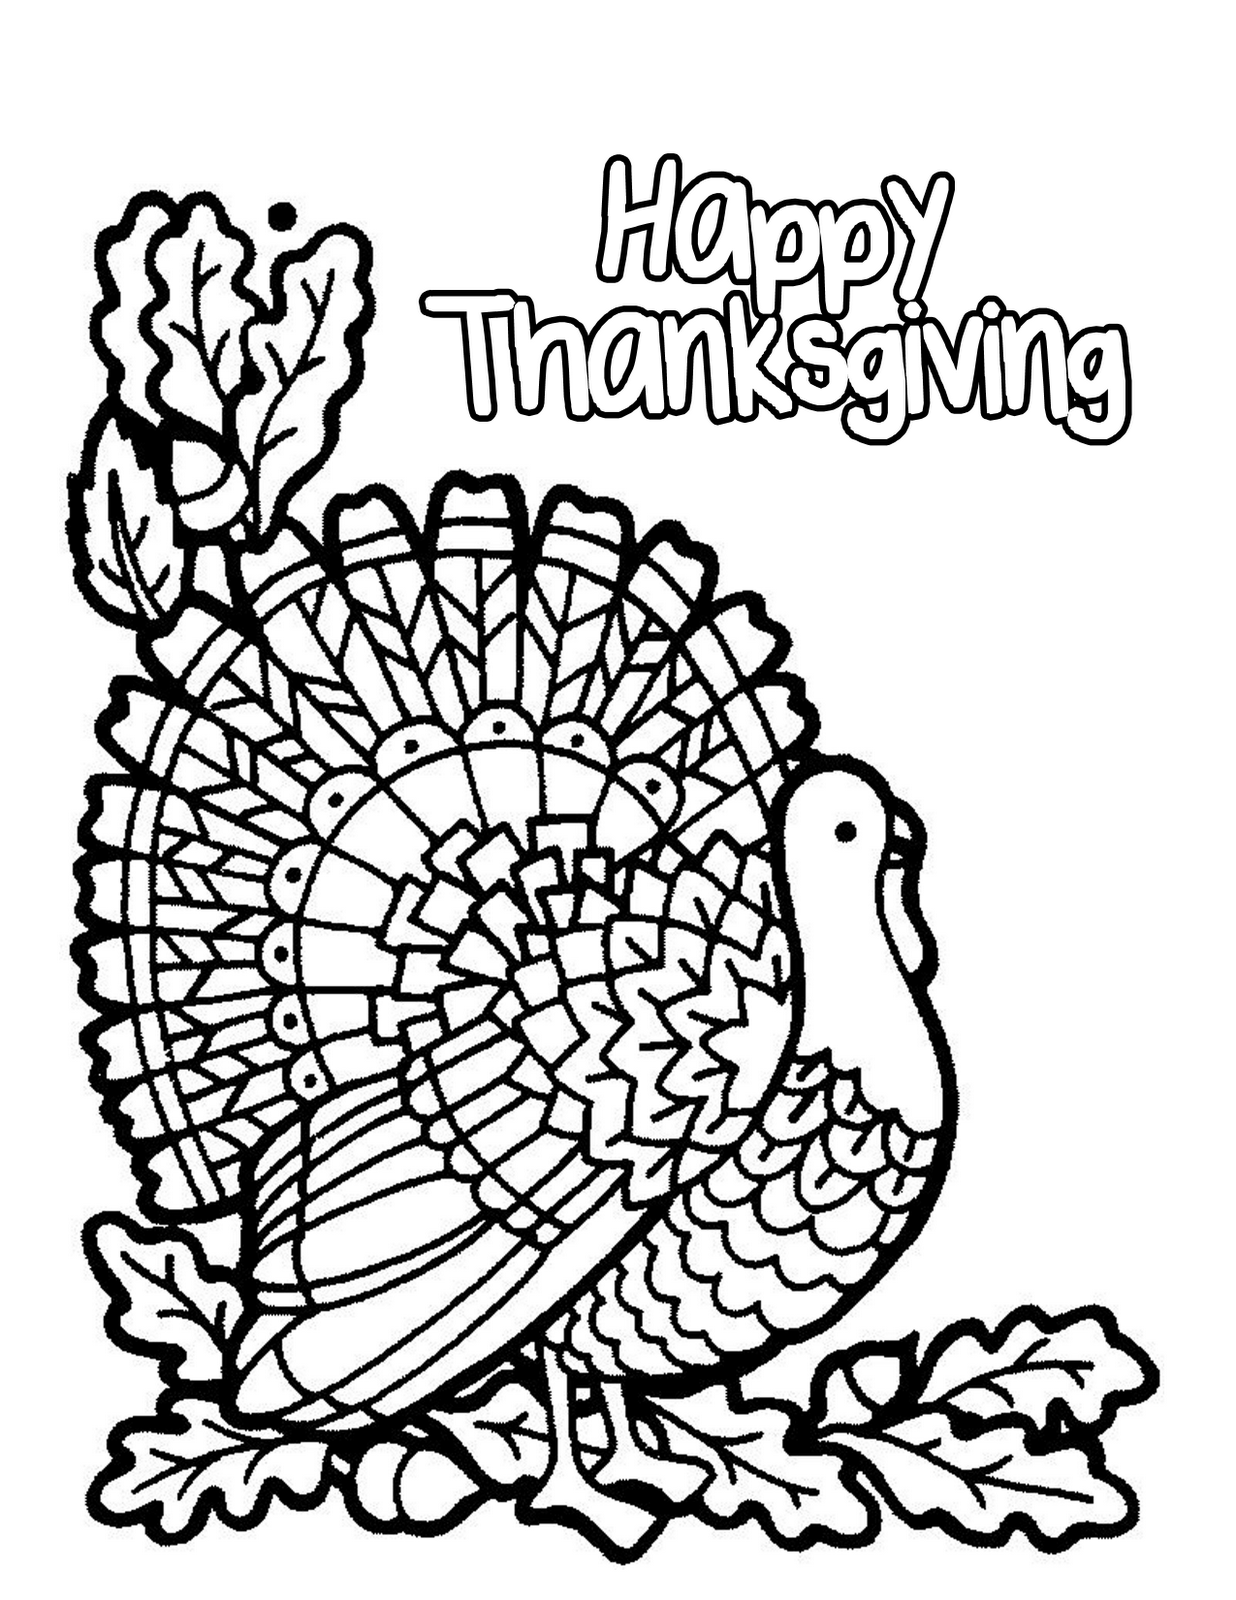 It is an image of Gratifying Turkey to Color Free Printable